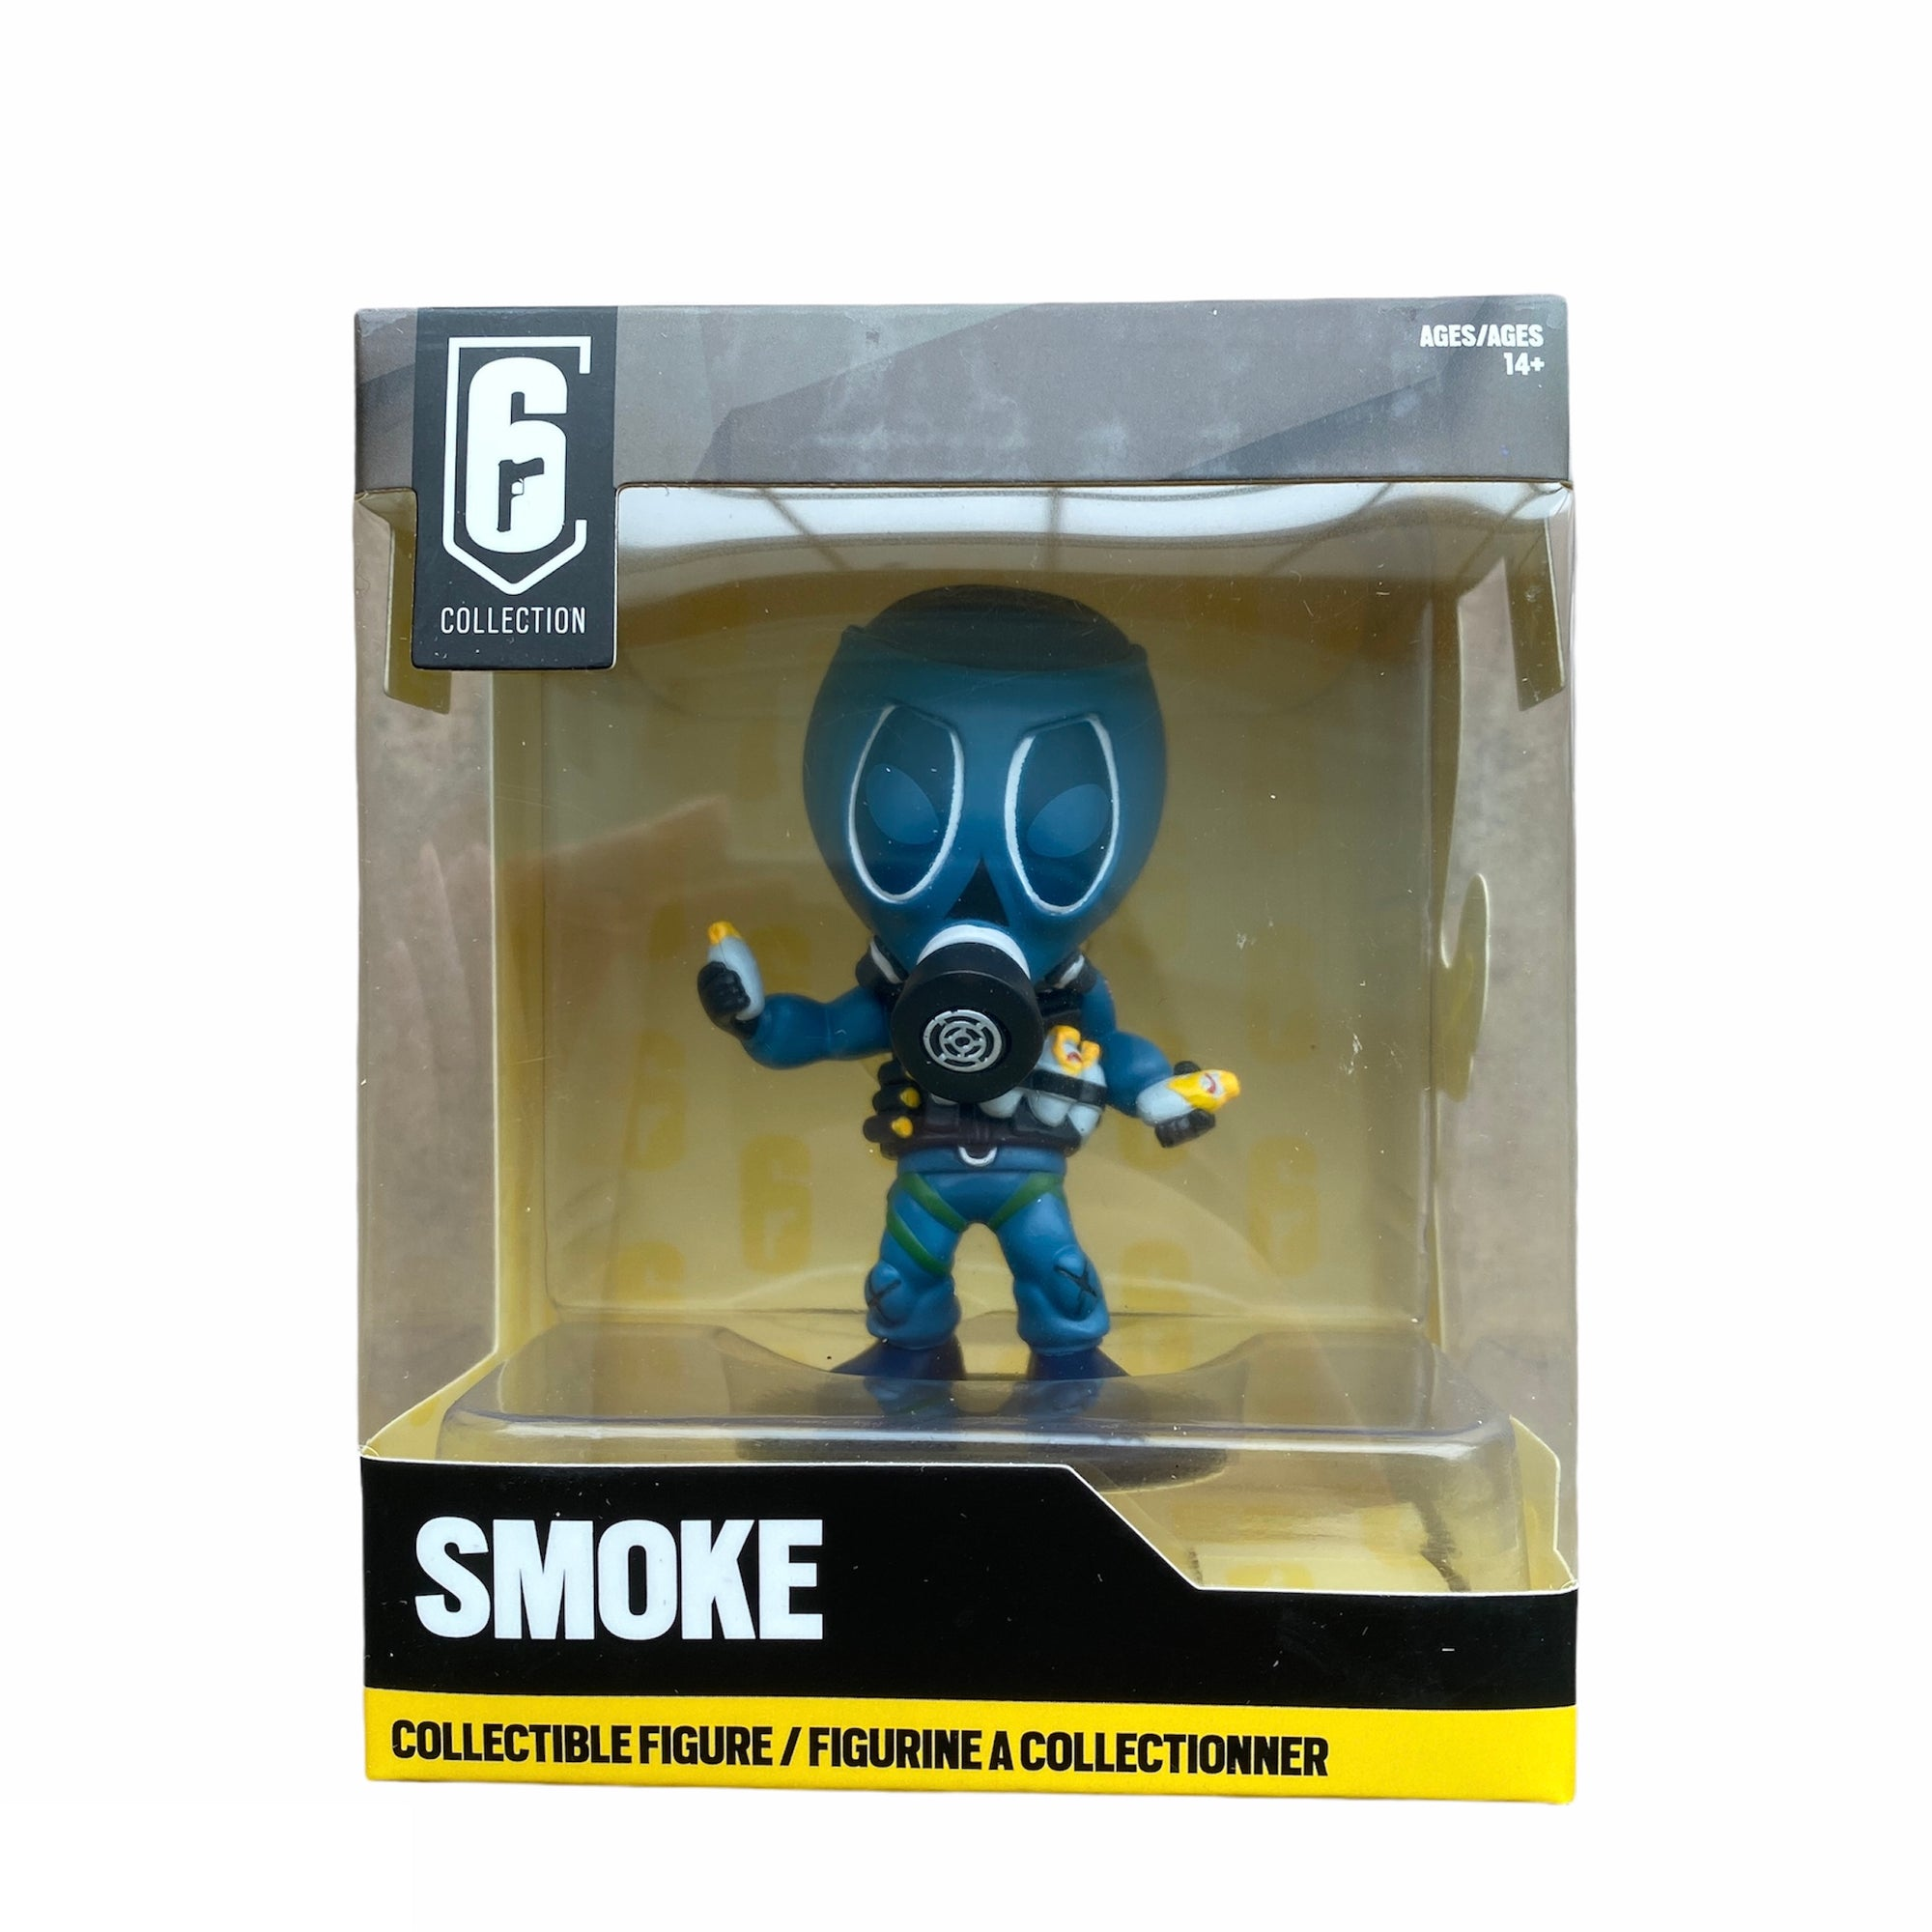 Rainbow Six Smoke Chibi Series 1 Collection